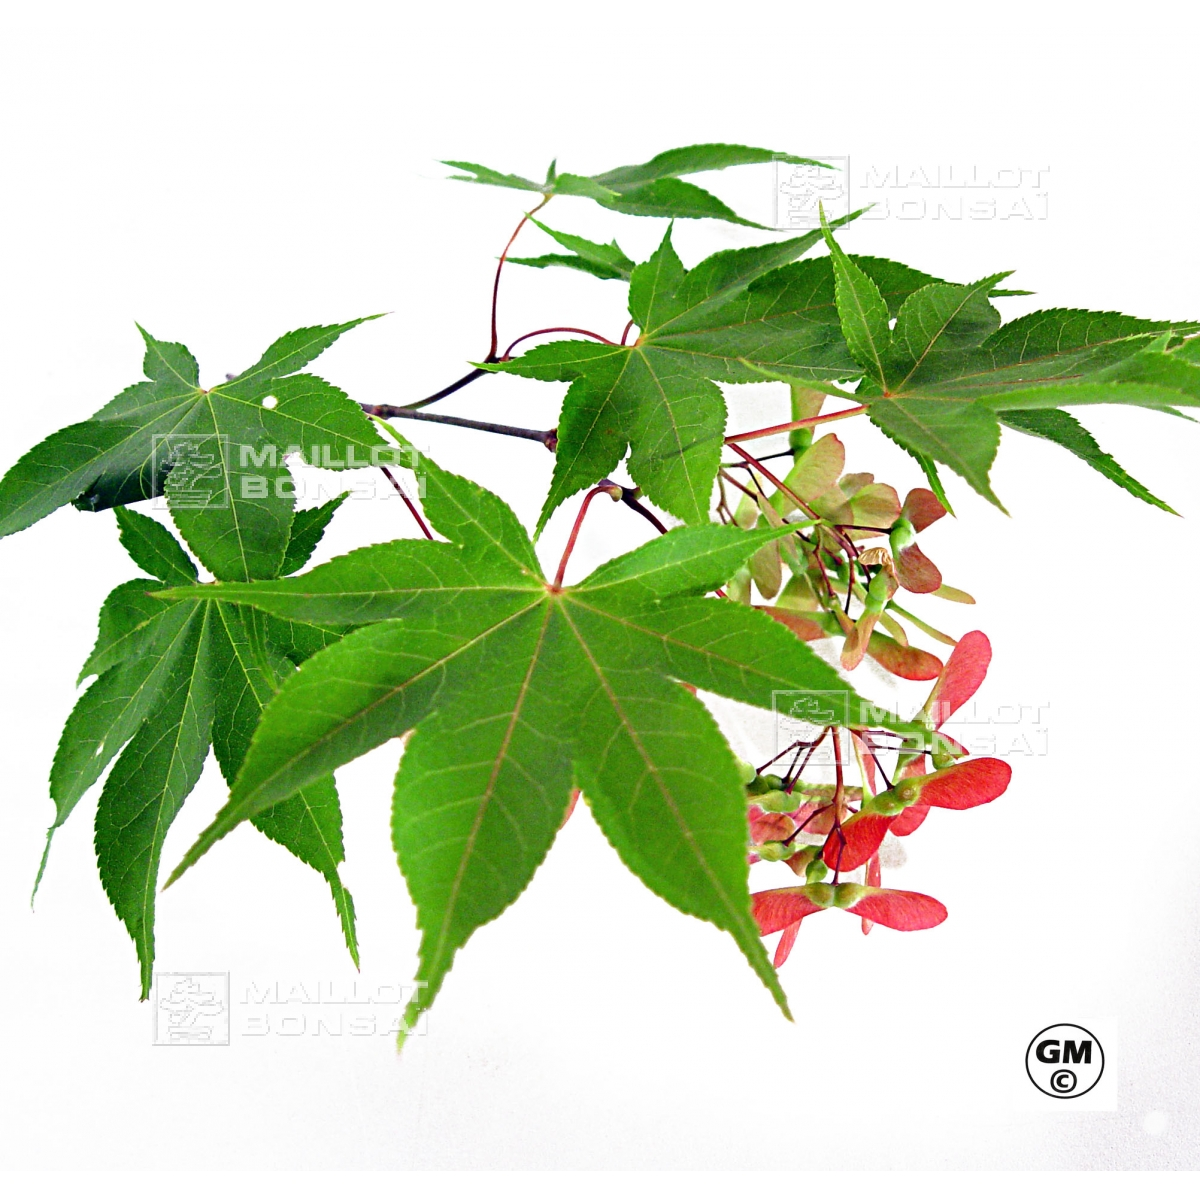 Acer Seeds And More Acer Amoenum Seeds Kurabu Yama From Maillot